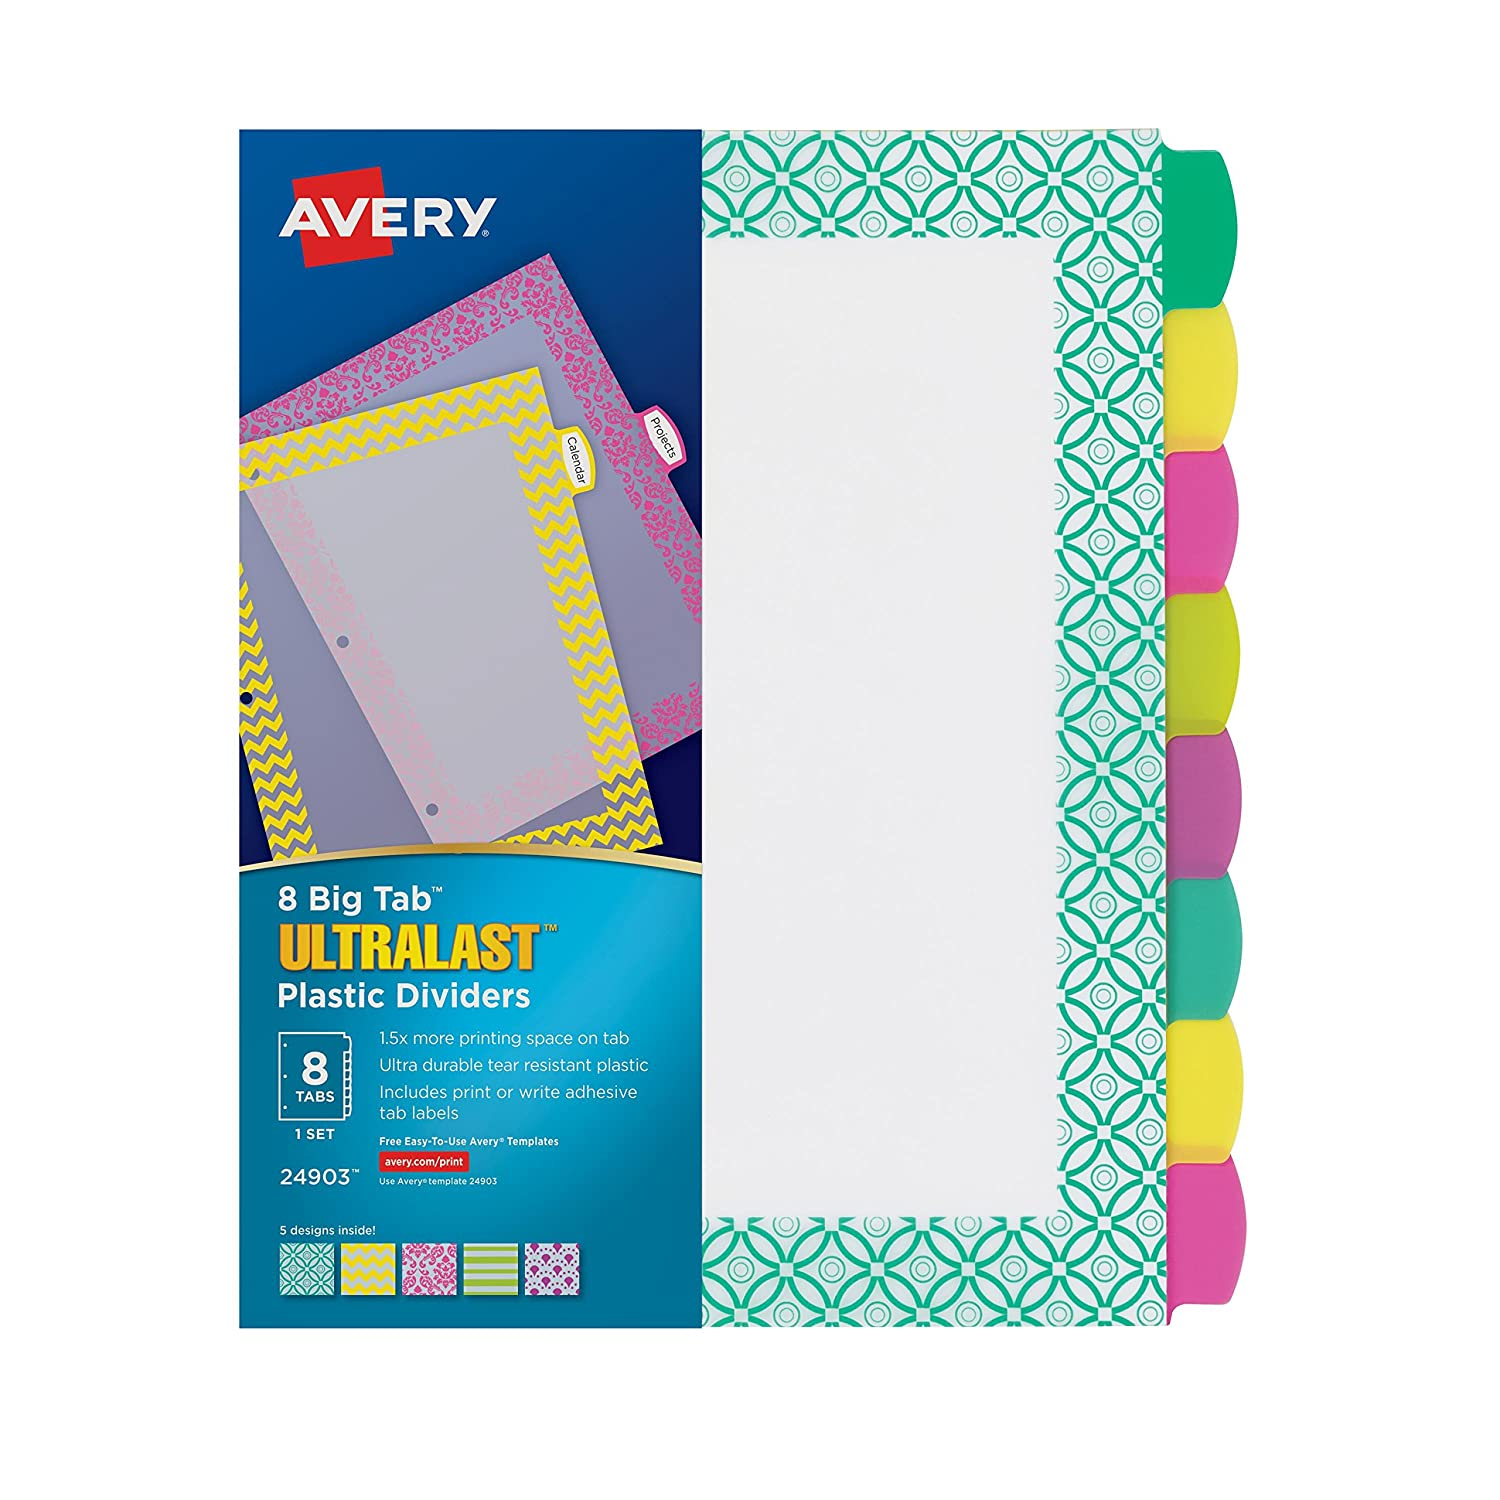 Avery Ultralast Big Tab Plastic Dividers, 8 Tabs, 1 Set, Assorted Designs (24903) Avery Products Corporation